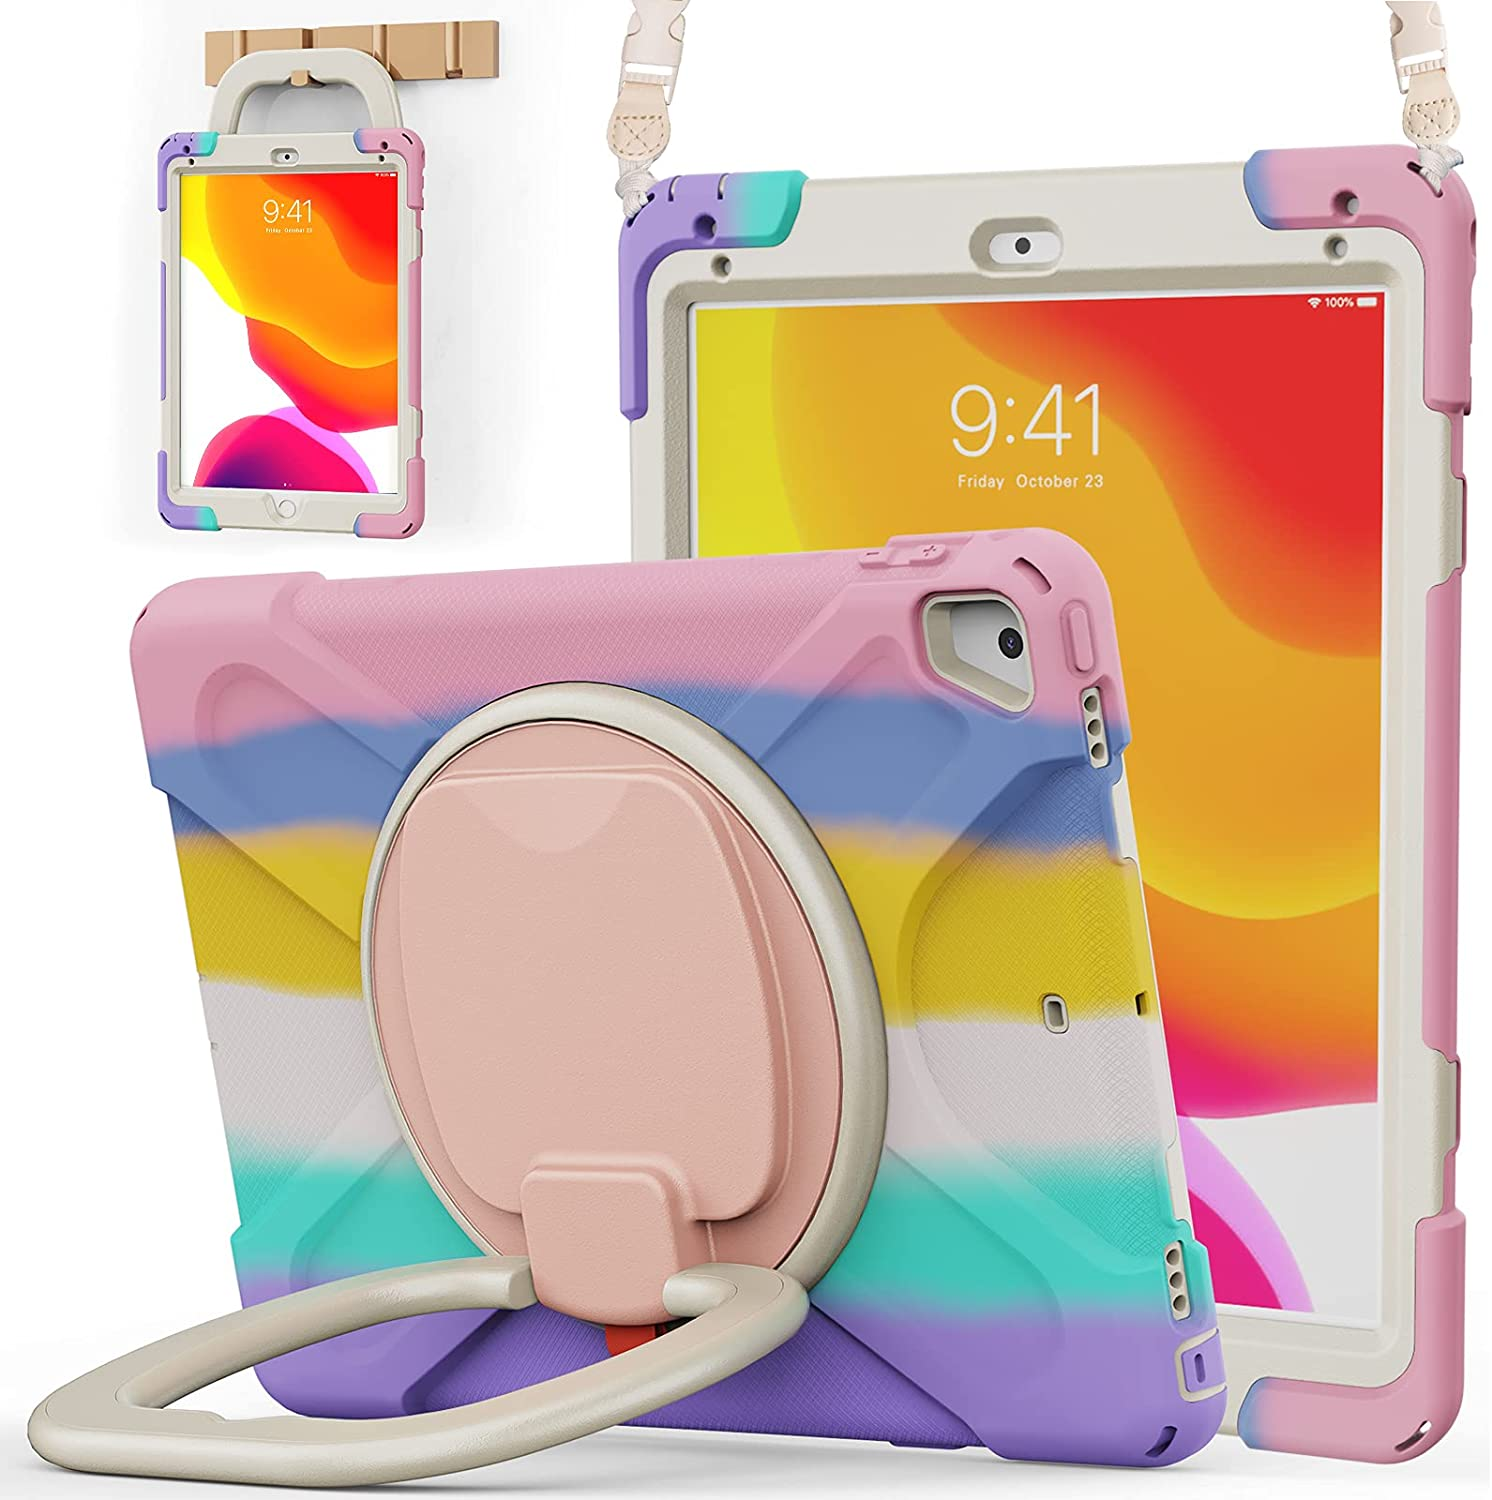 BATYUE iPad 9.7 inch Case for 2018 iPad 6th Gen/ 2017 iPad 5th Gen, iPad Air 2/ iPad Pro 9.7'',Shockproof Protective Rugged Cover with Pencil Holder &Rotating Bracket &Shoulder Strap(Colourful Pink)